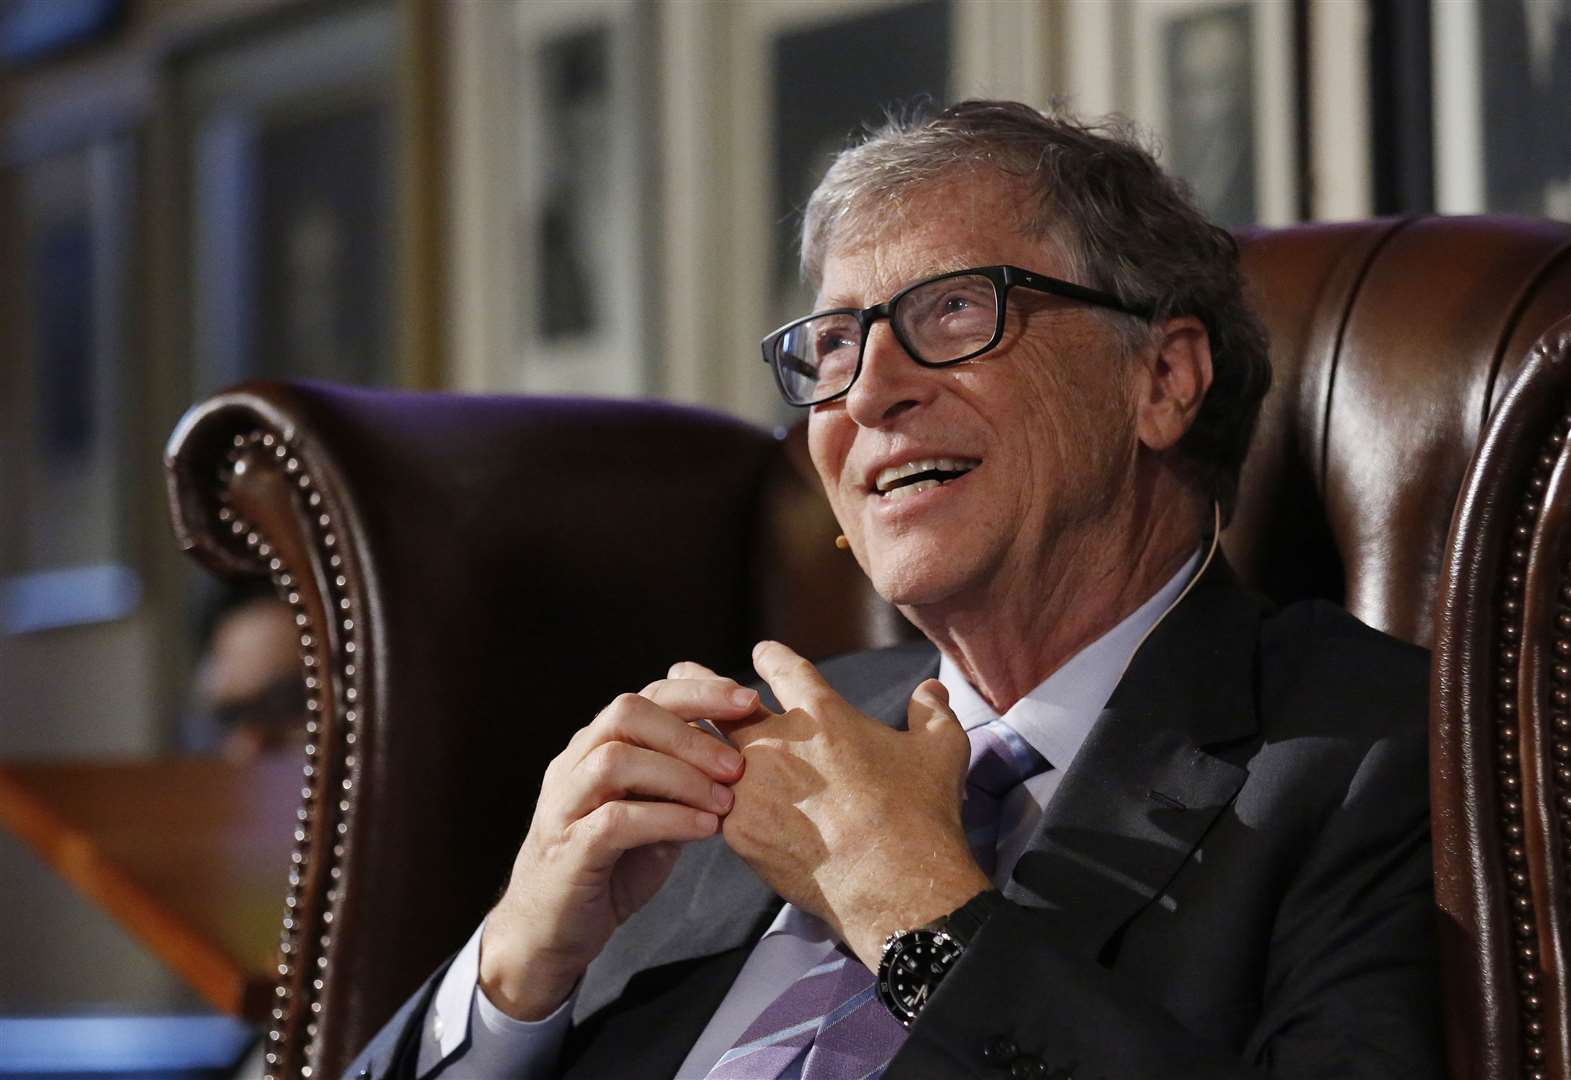 Bill Gates makes two big predictions for global healthcare in Cambridge Union speech